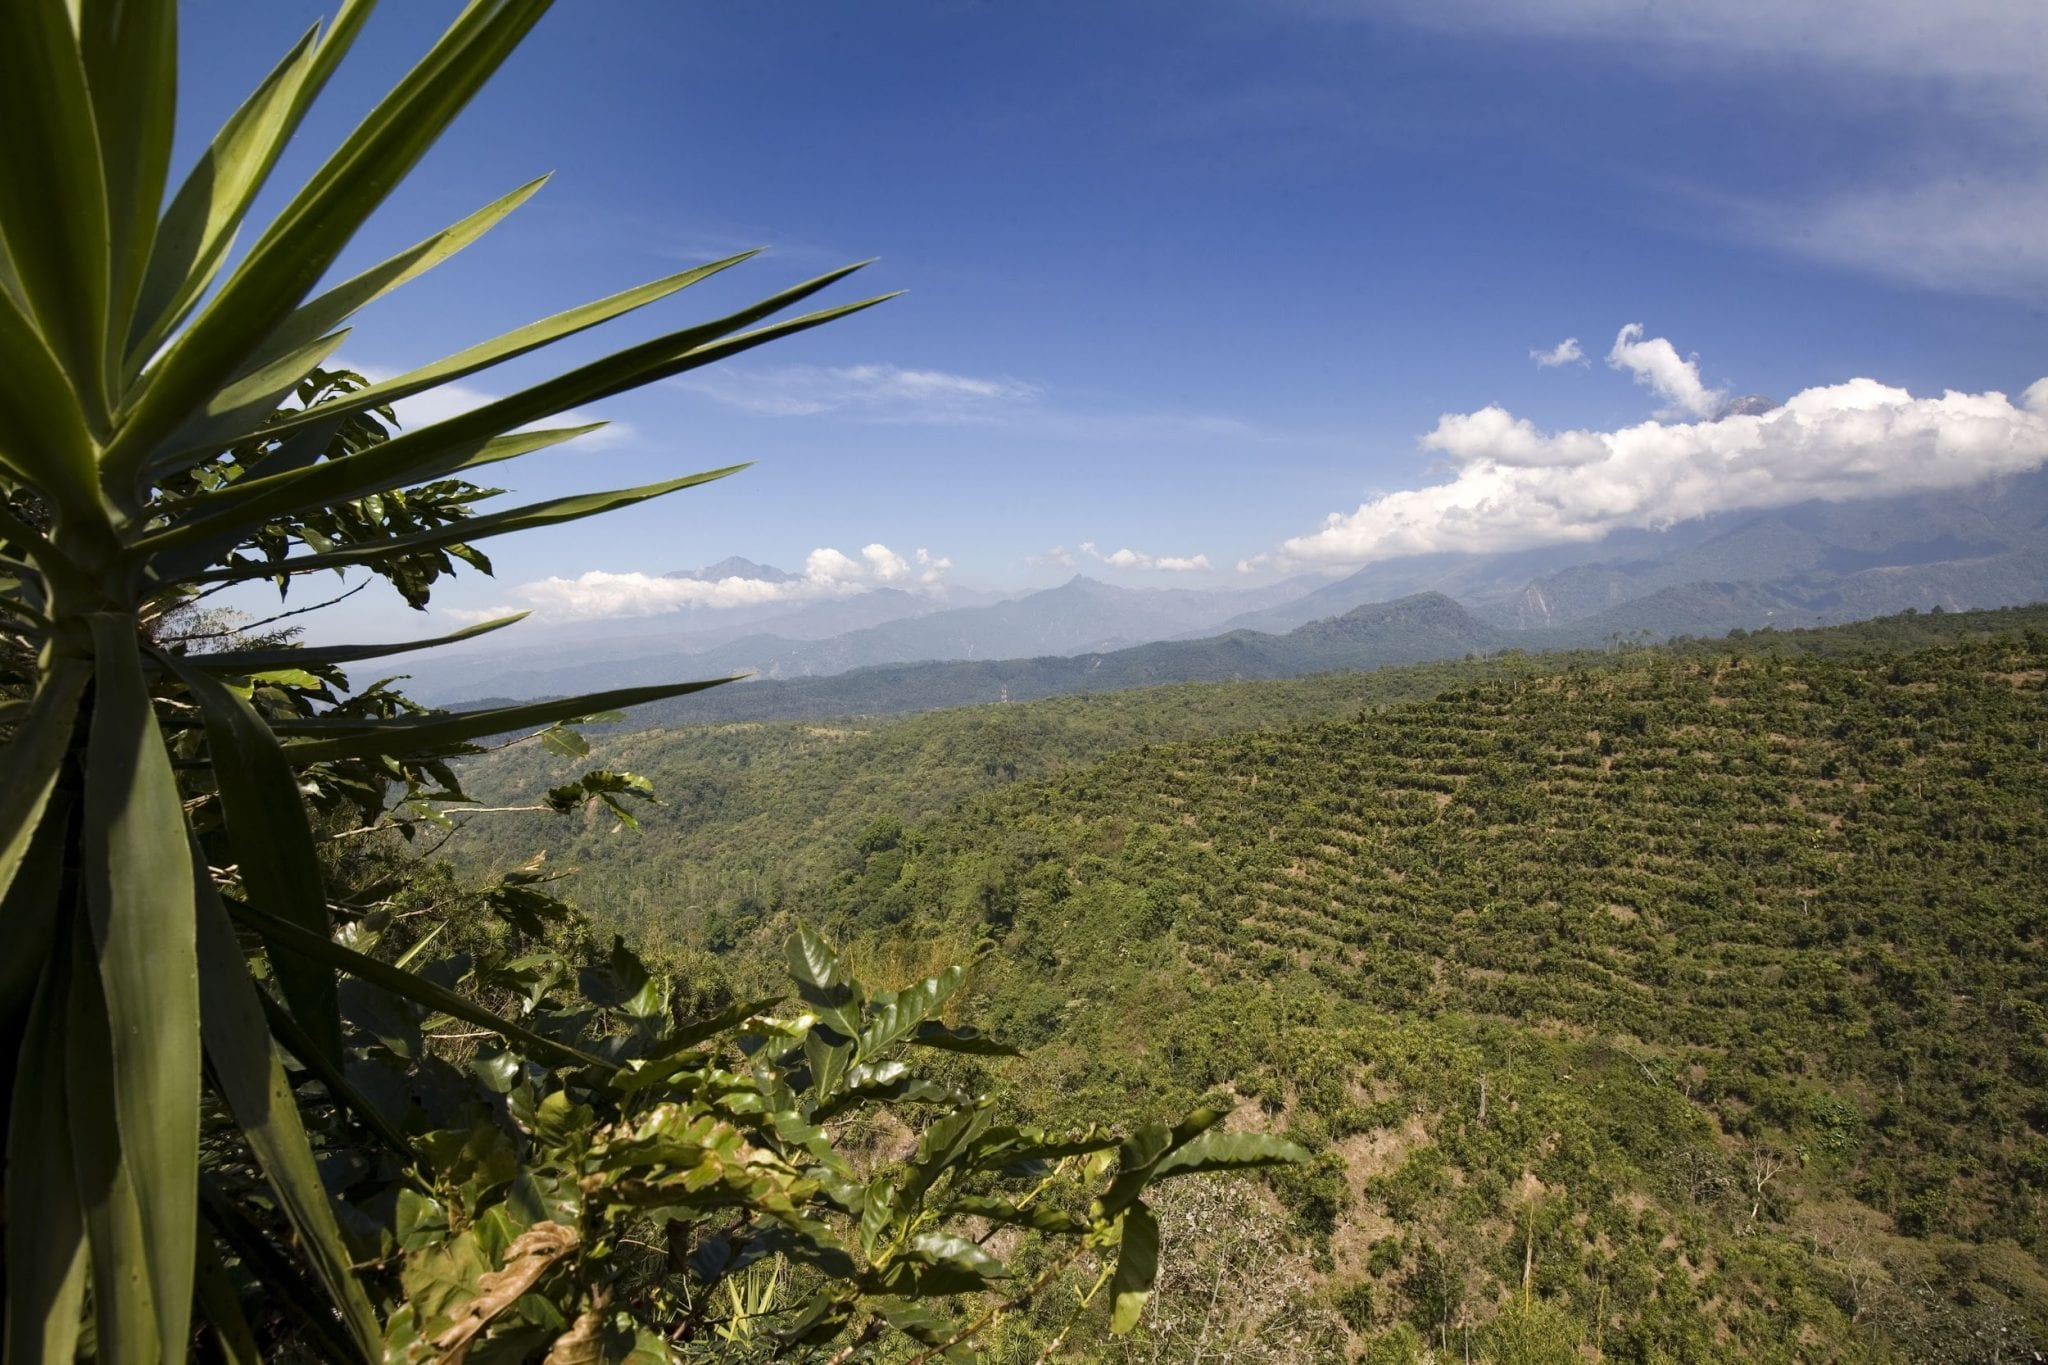 View of coffee fields in San Marcos, Guatemala.